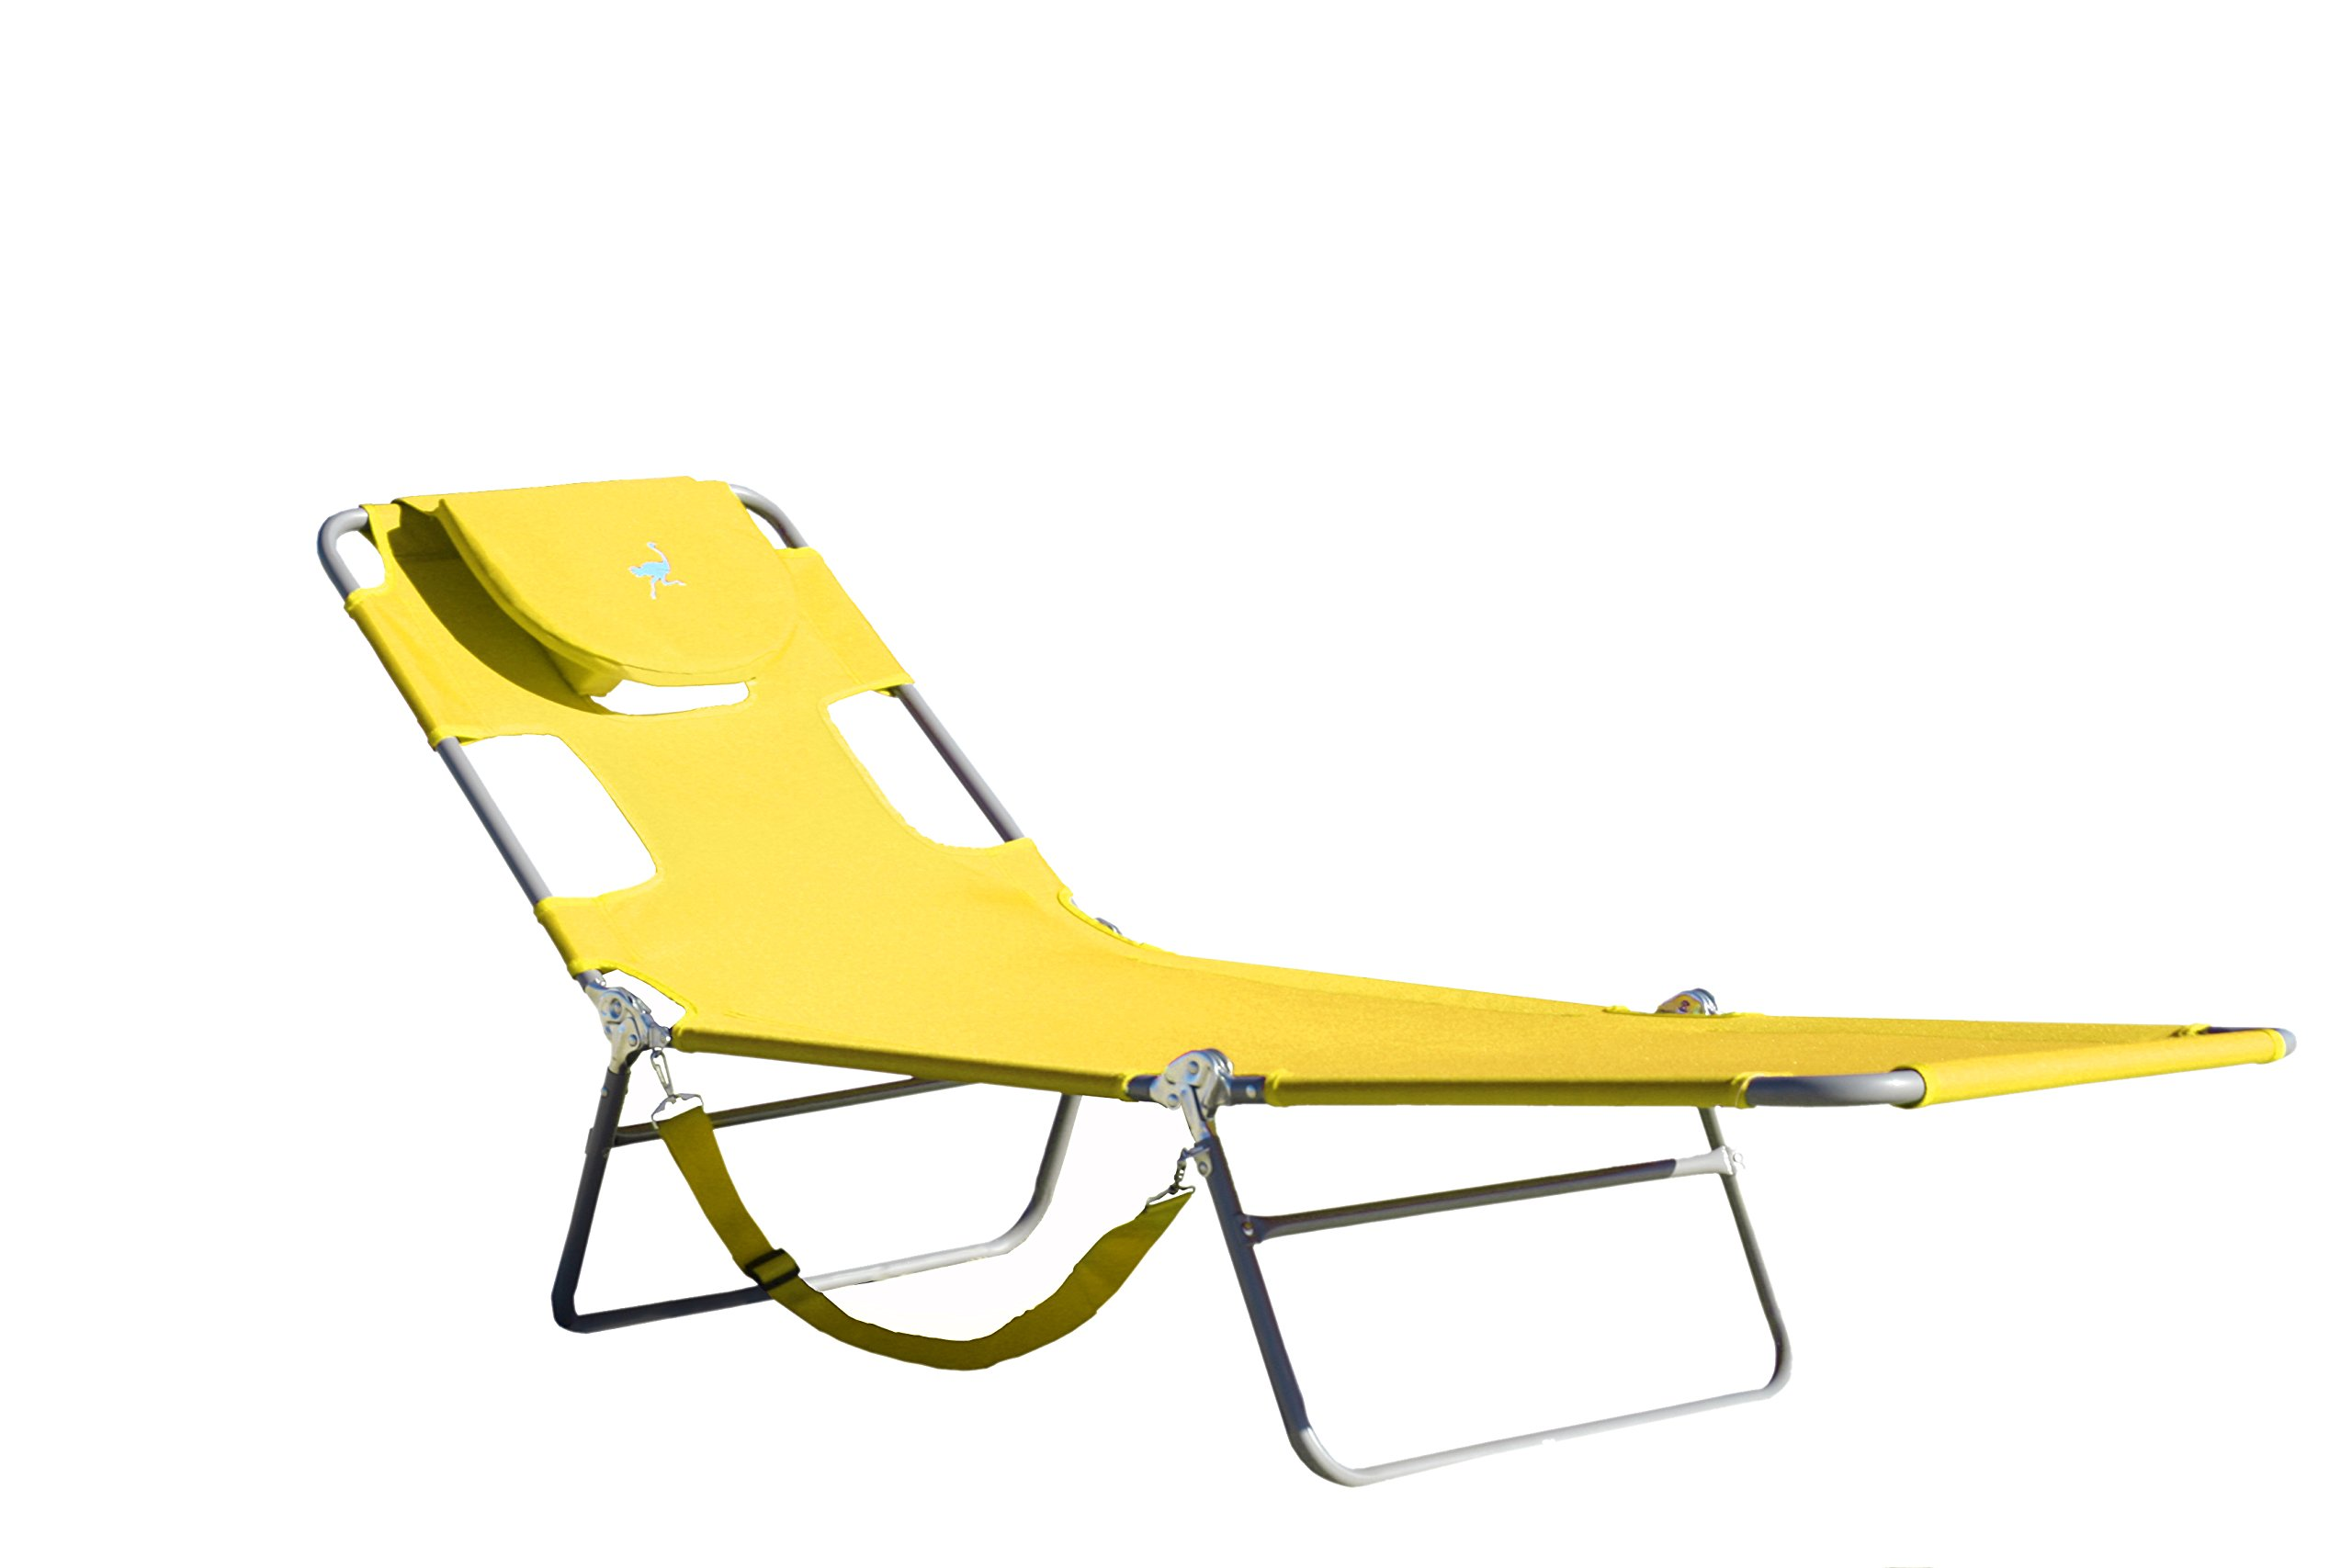 Ostrich Chaise Lounge, Green by Ostrich